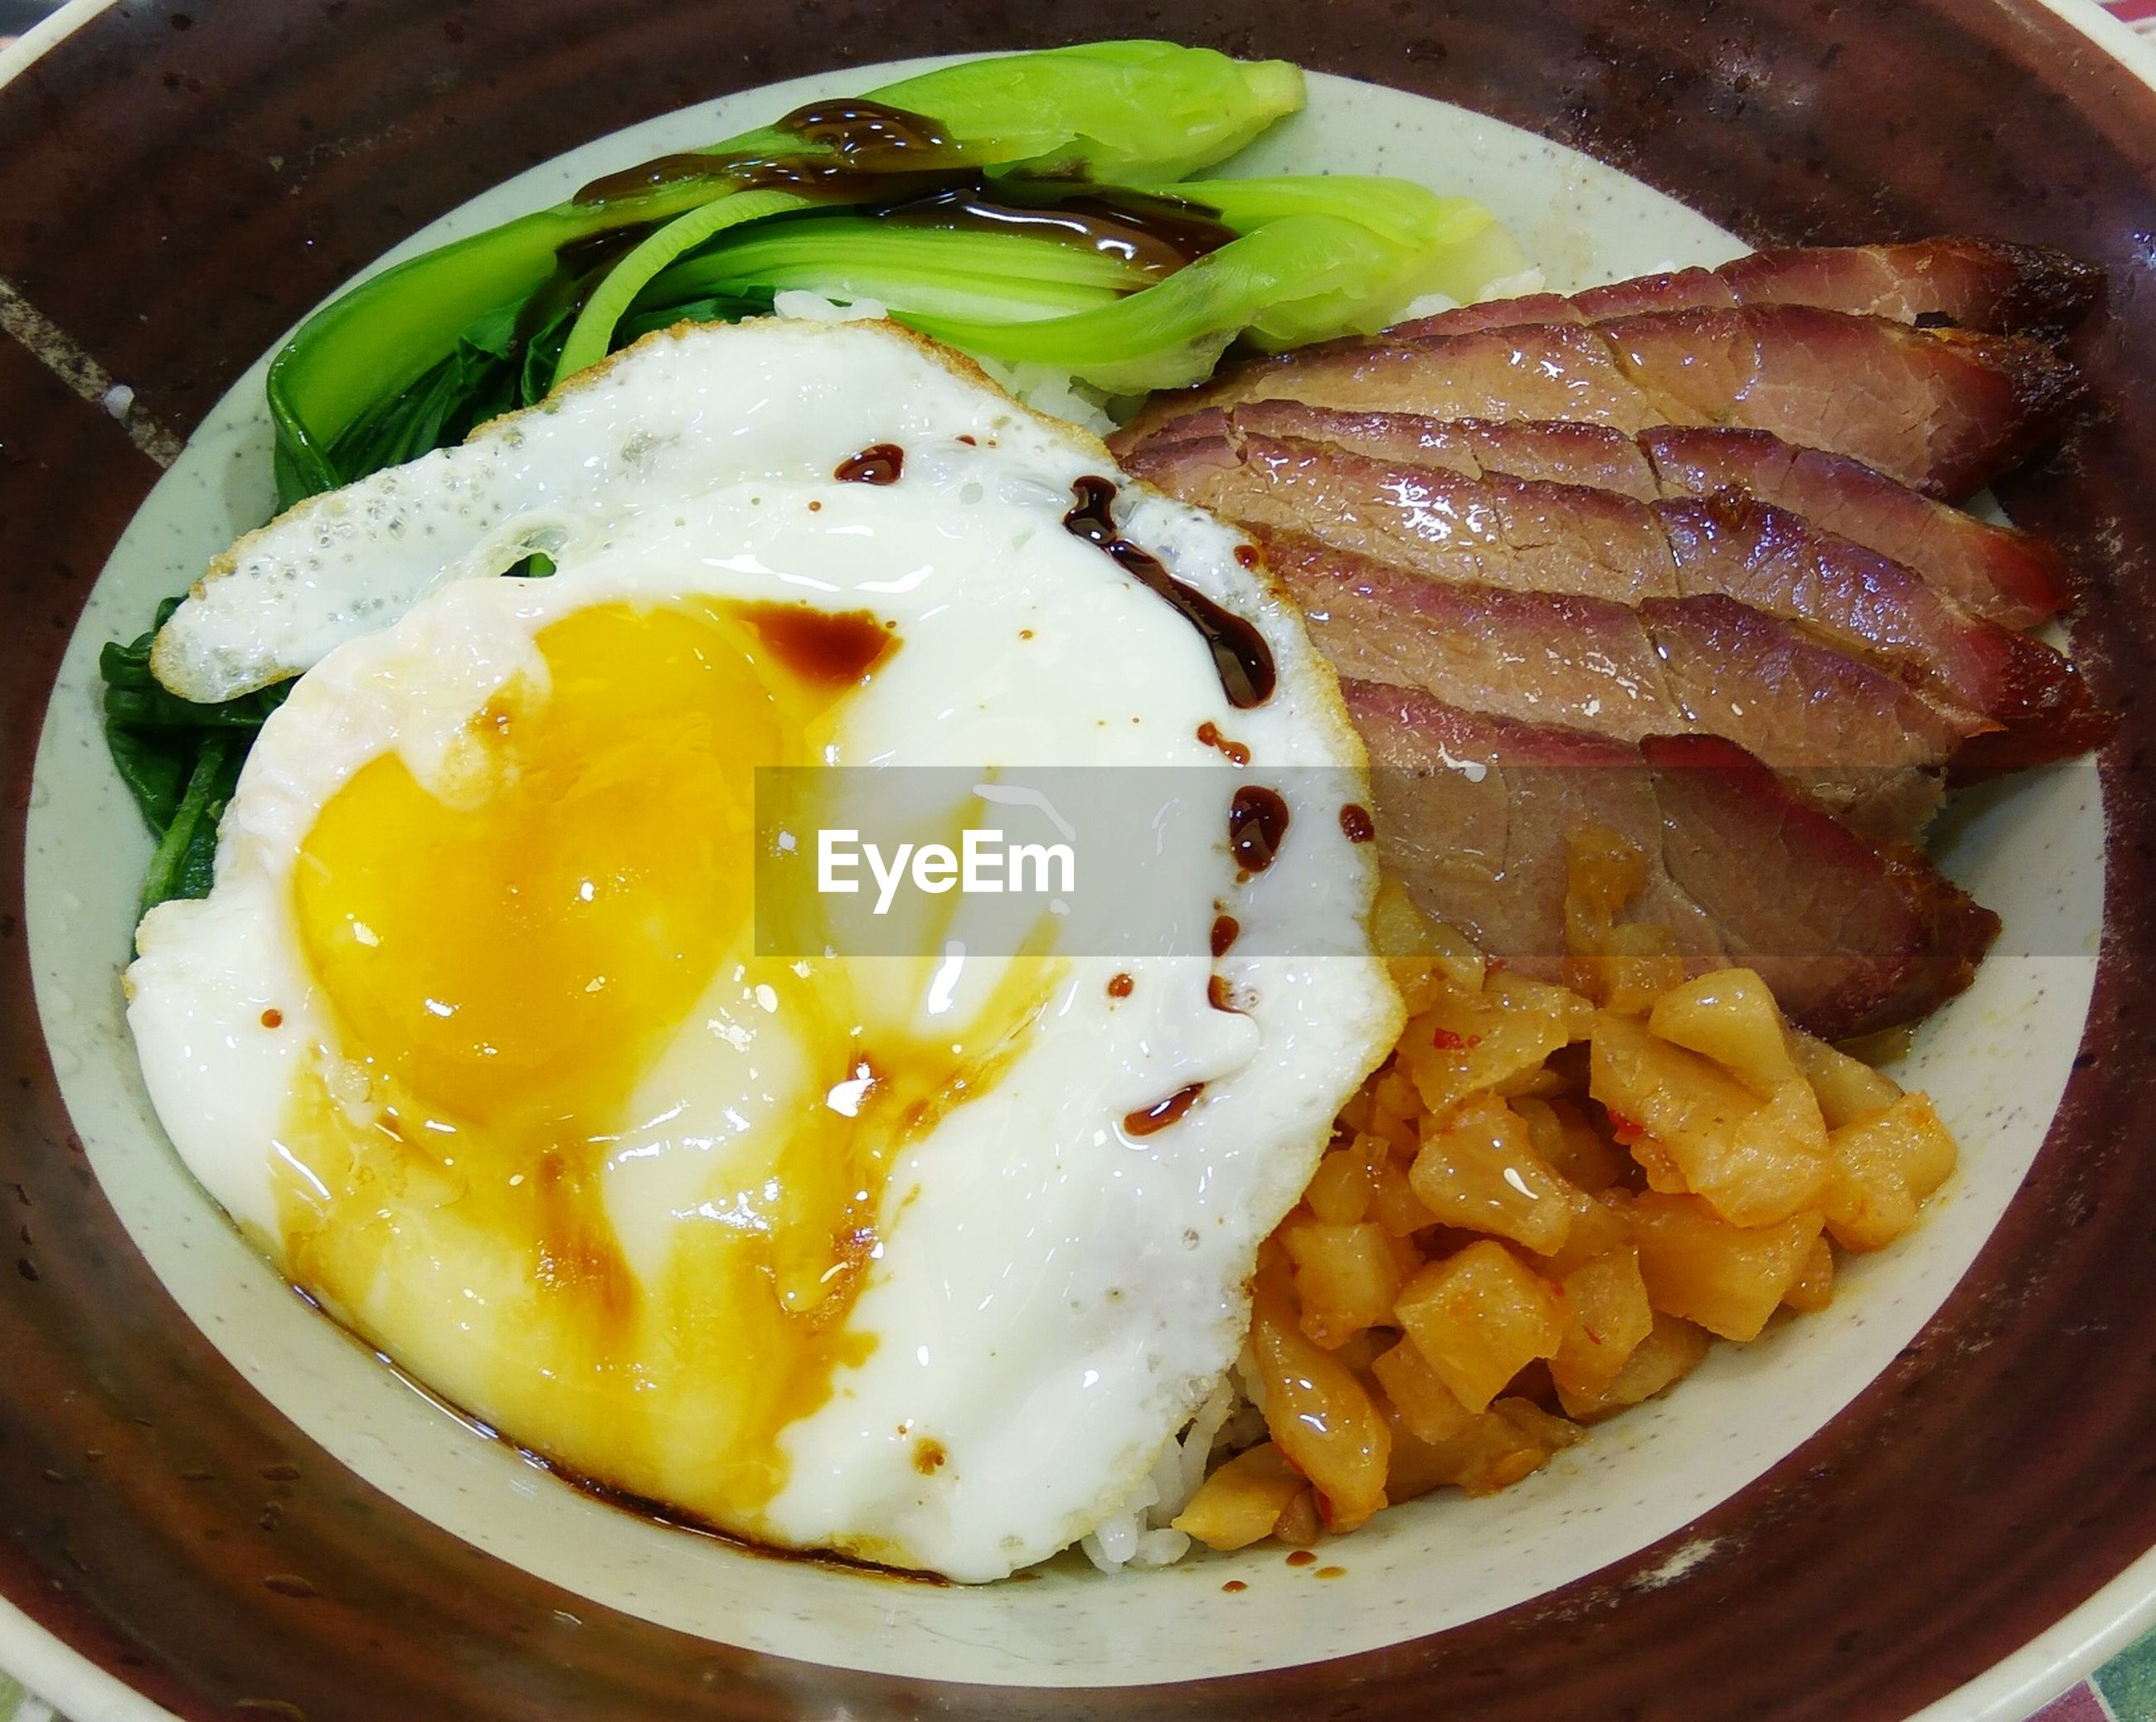 food and drink, food, indoors, plate, egg yolk, freshness, egg, close-up, ready-to-eat, meal, healthy eating, yellow, fried egg, appetizer, cooked, serving size, temptation, indulgence, savory food, garnish, serving dish